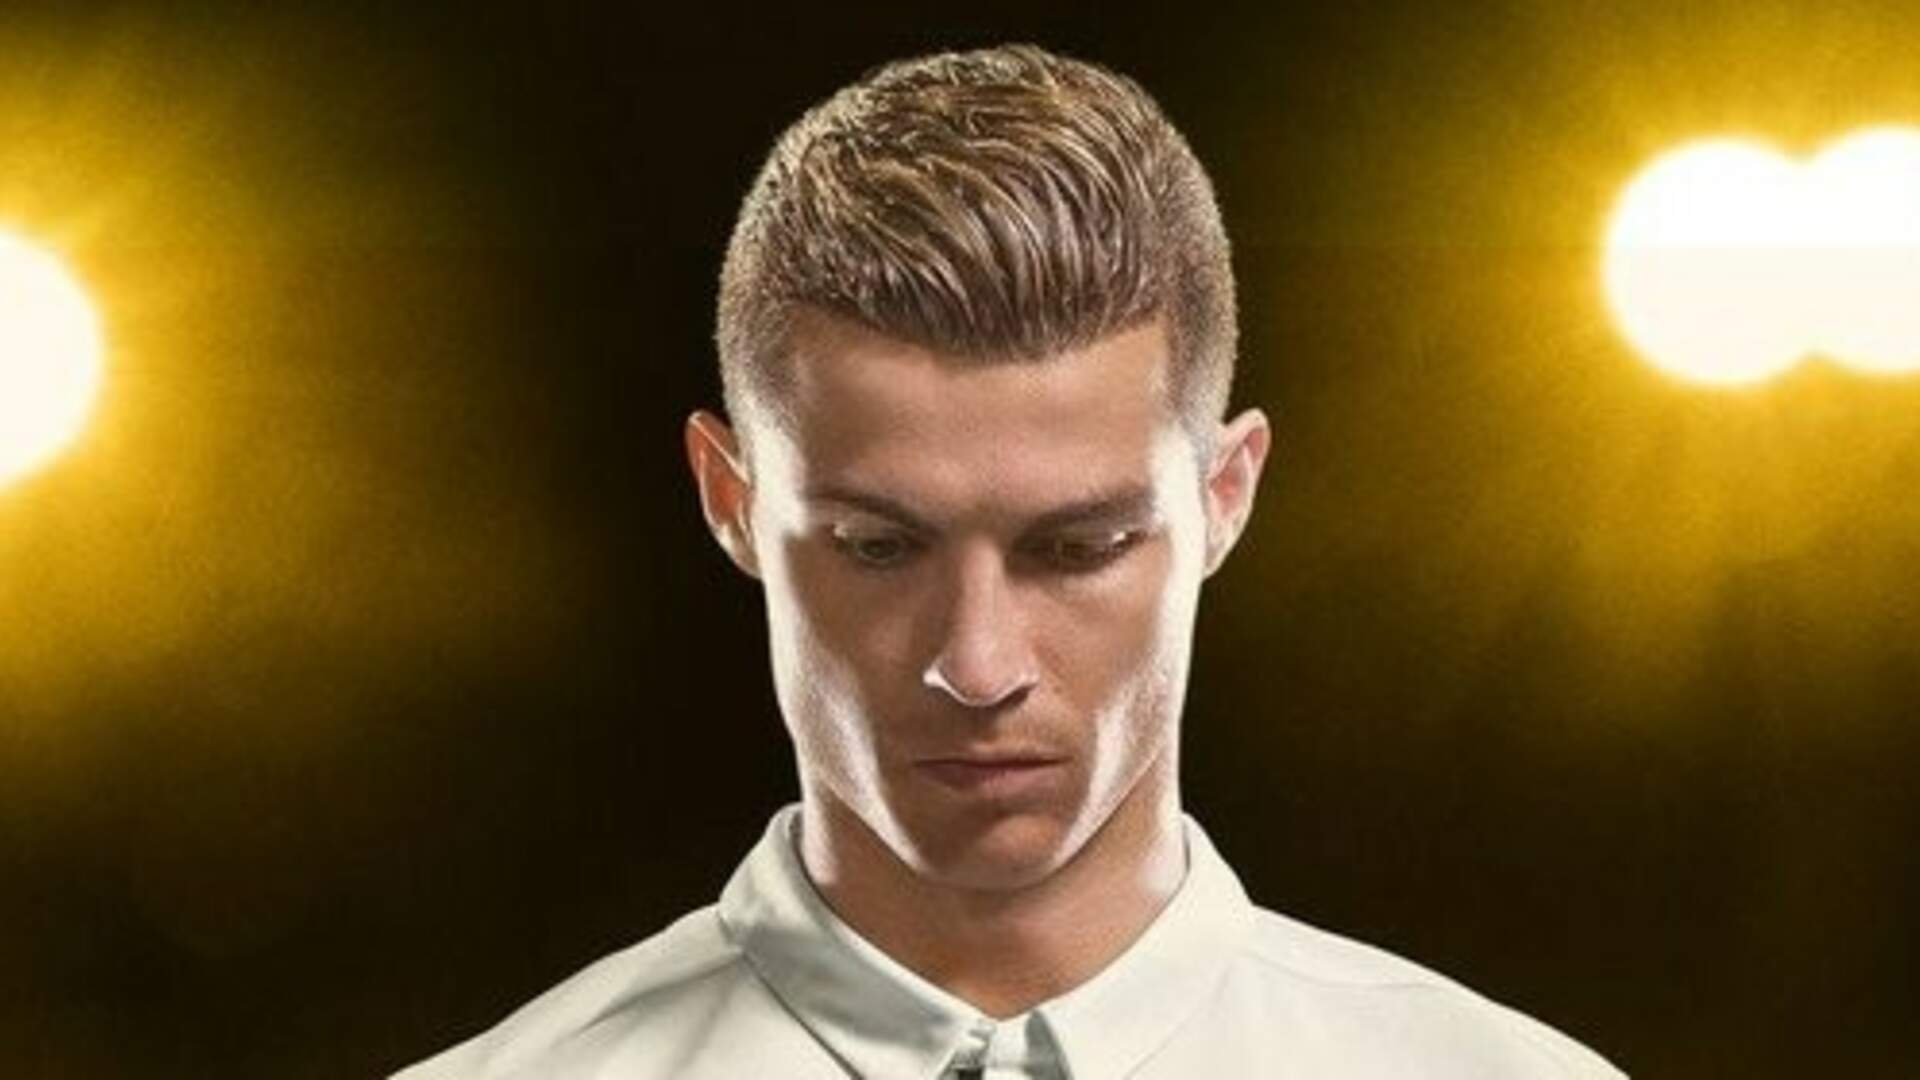 FIFA 18 is Tom's Favorite Game of 2017: Deal With It